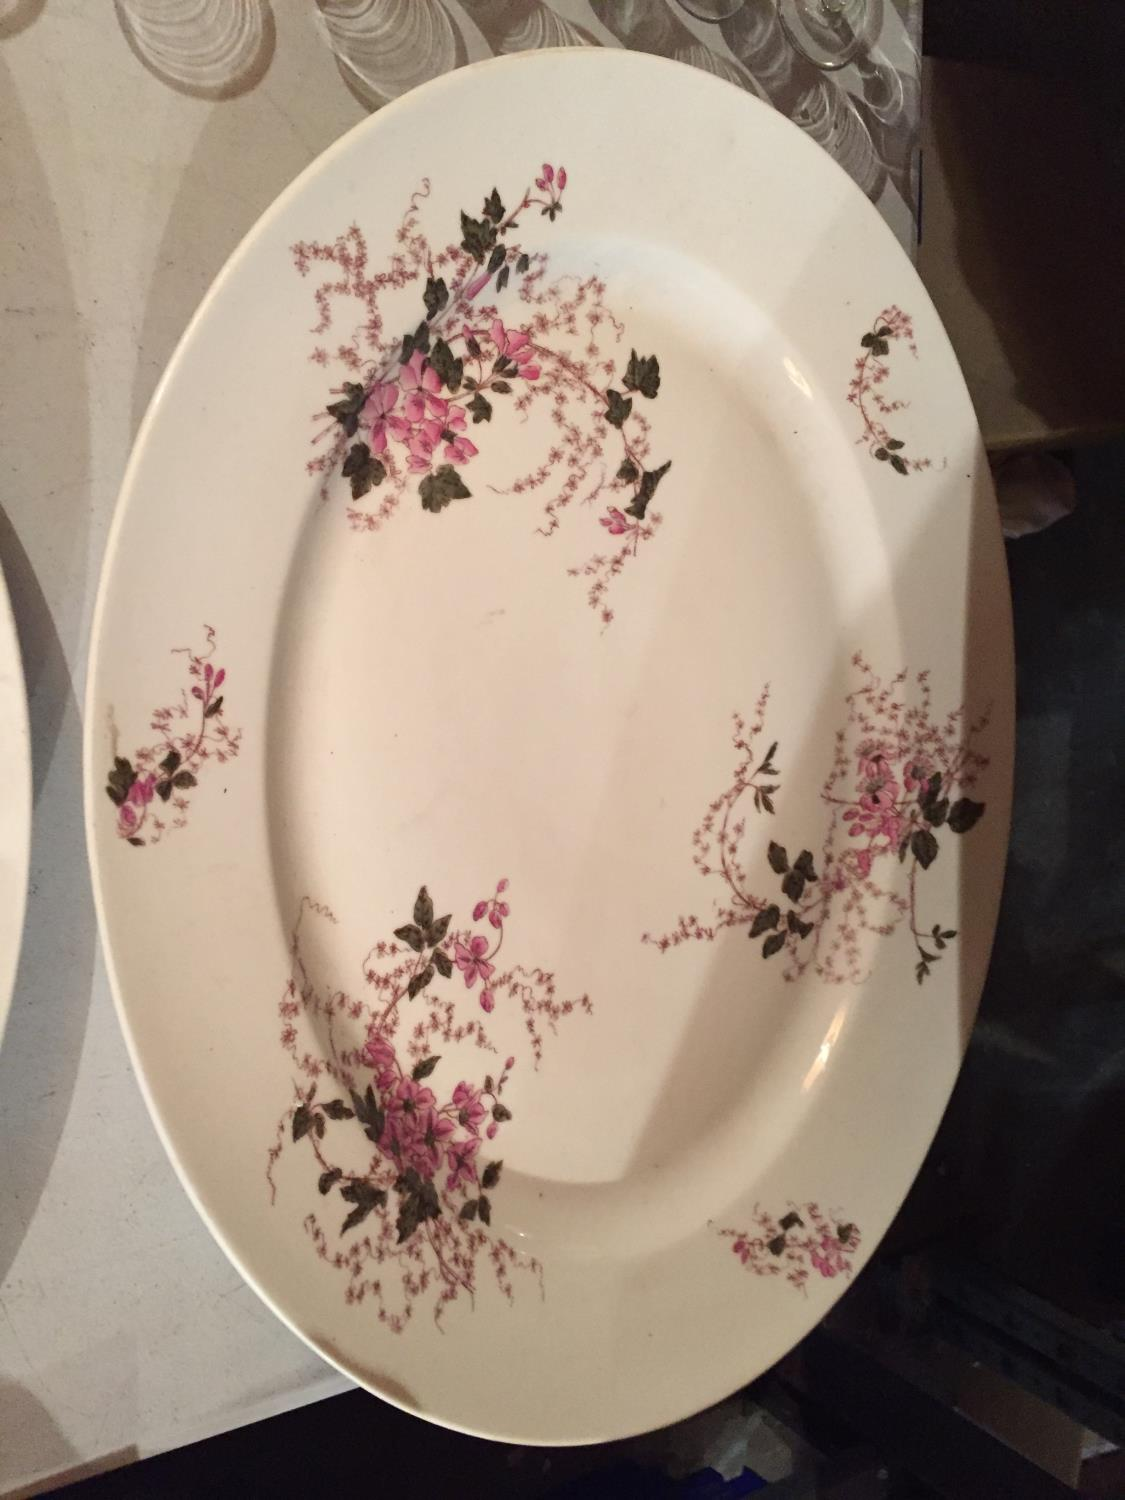 TWO LARGE HEAVY CERAMIC MEAT PLATTERS WITH A DELICATE PINK FLOWER DESIGN - Image 5 of 6